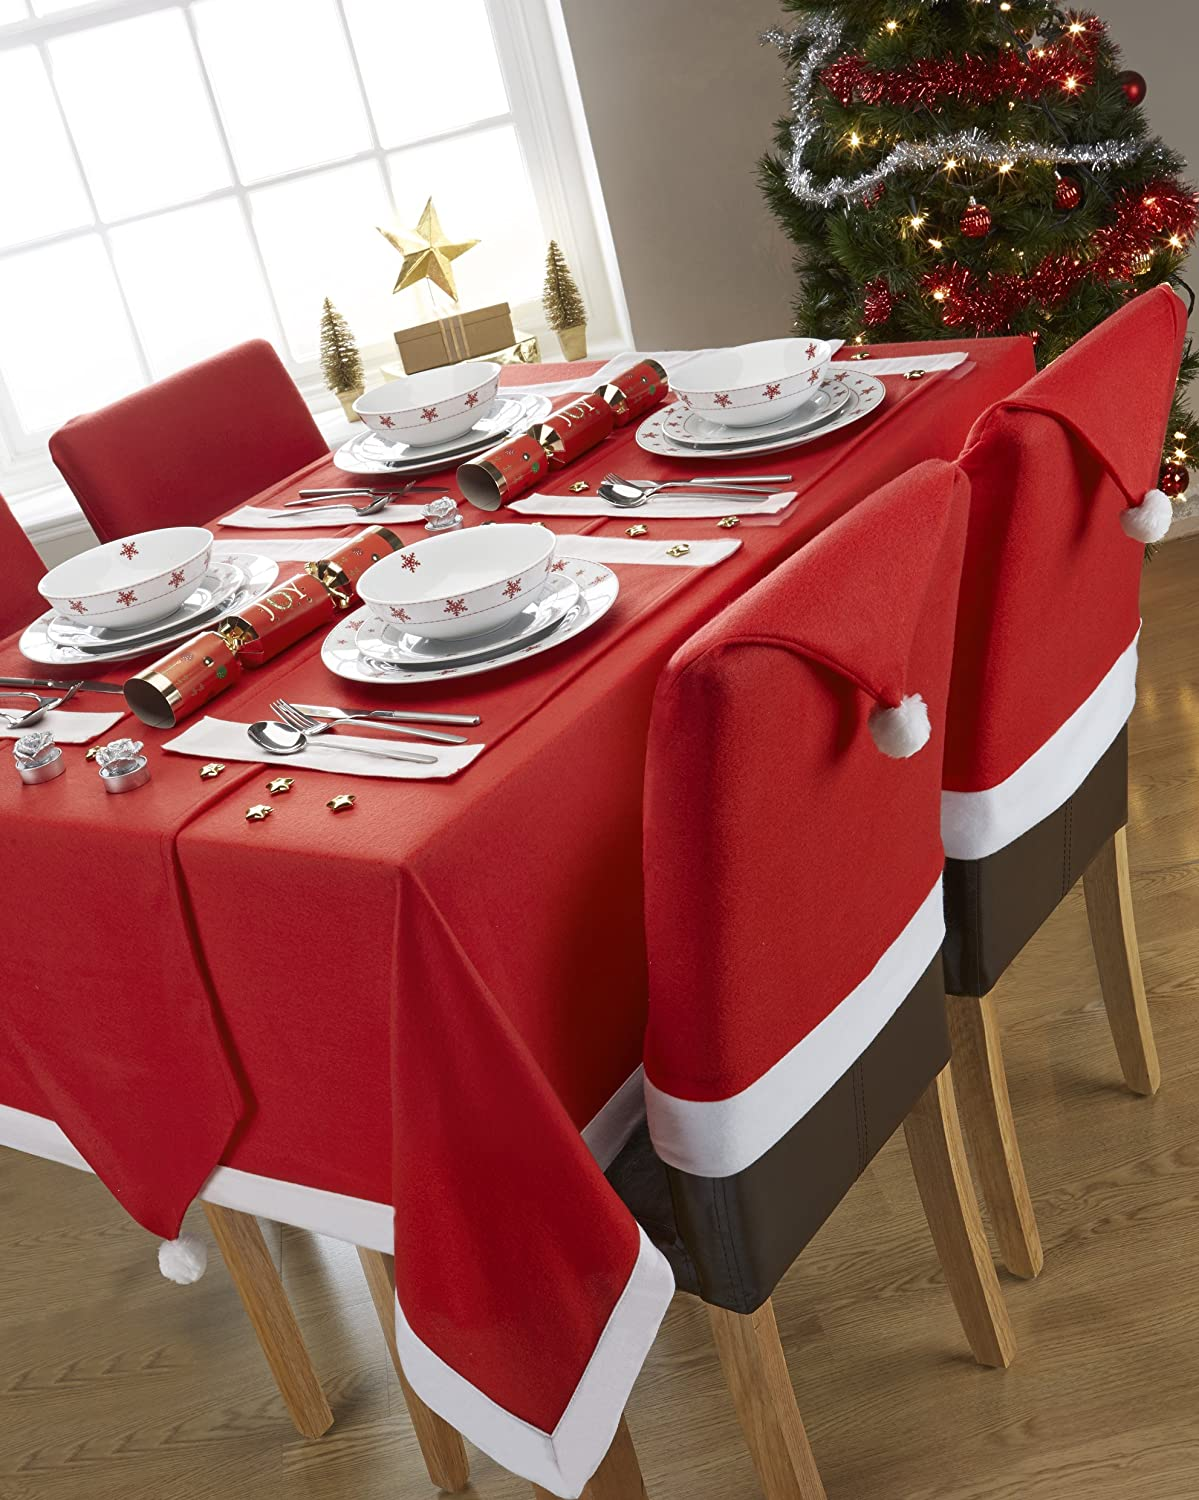 Santau0027s Table Red And White Rectangular Tablecloth Ideal For 6 8 Place  Settings (52x90inch 132x228centimeter Approx): Amazon.co.uk: Kitchen U0026 Home Nice Look